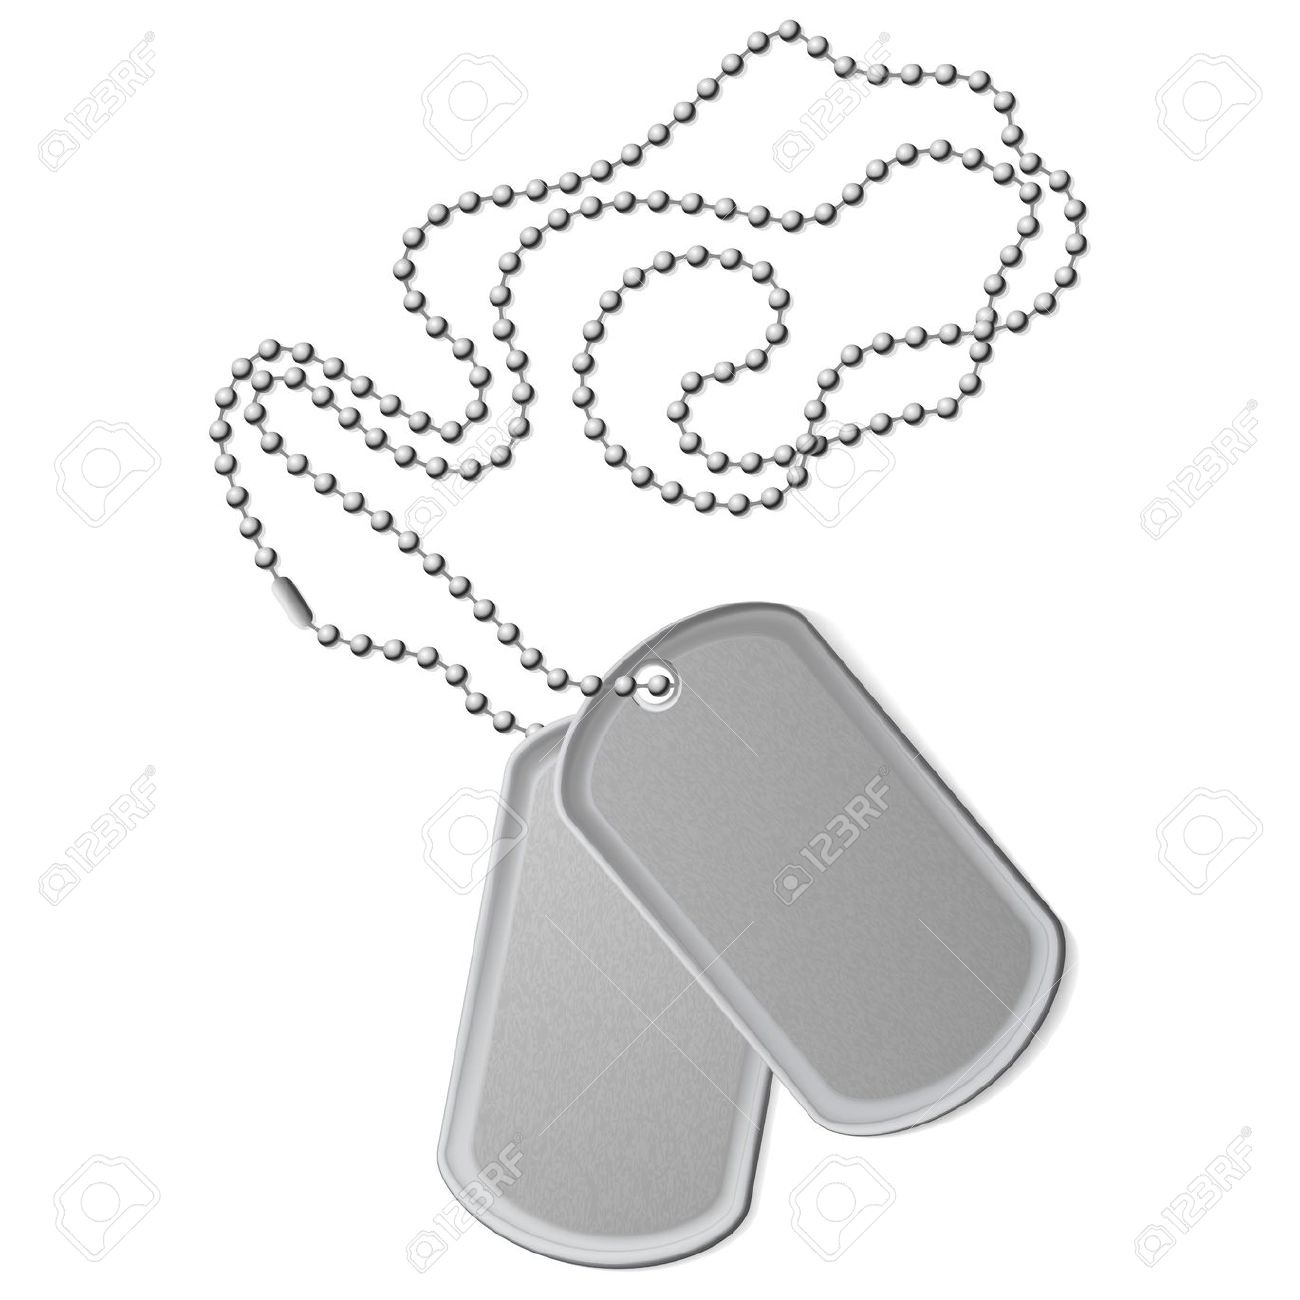 1300x1300 Dog Tags Army Clipart